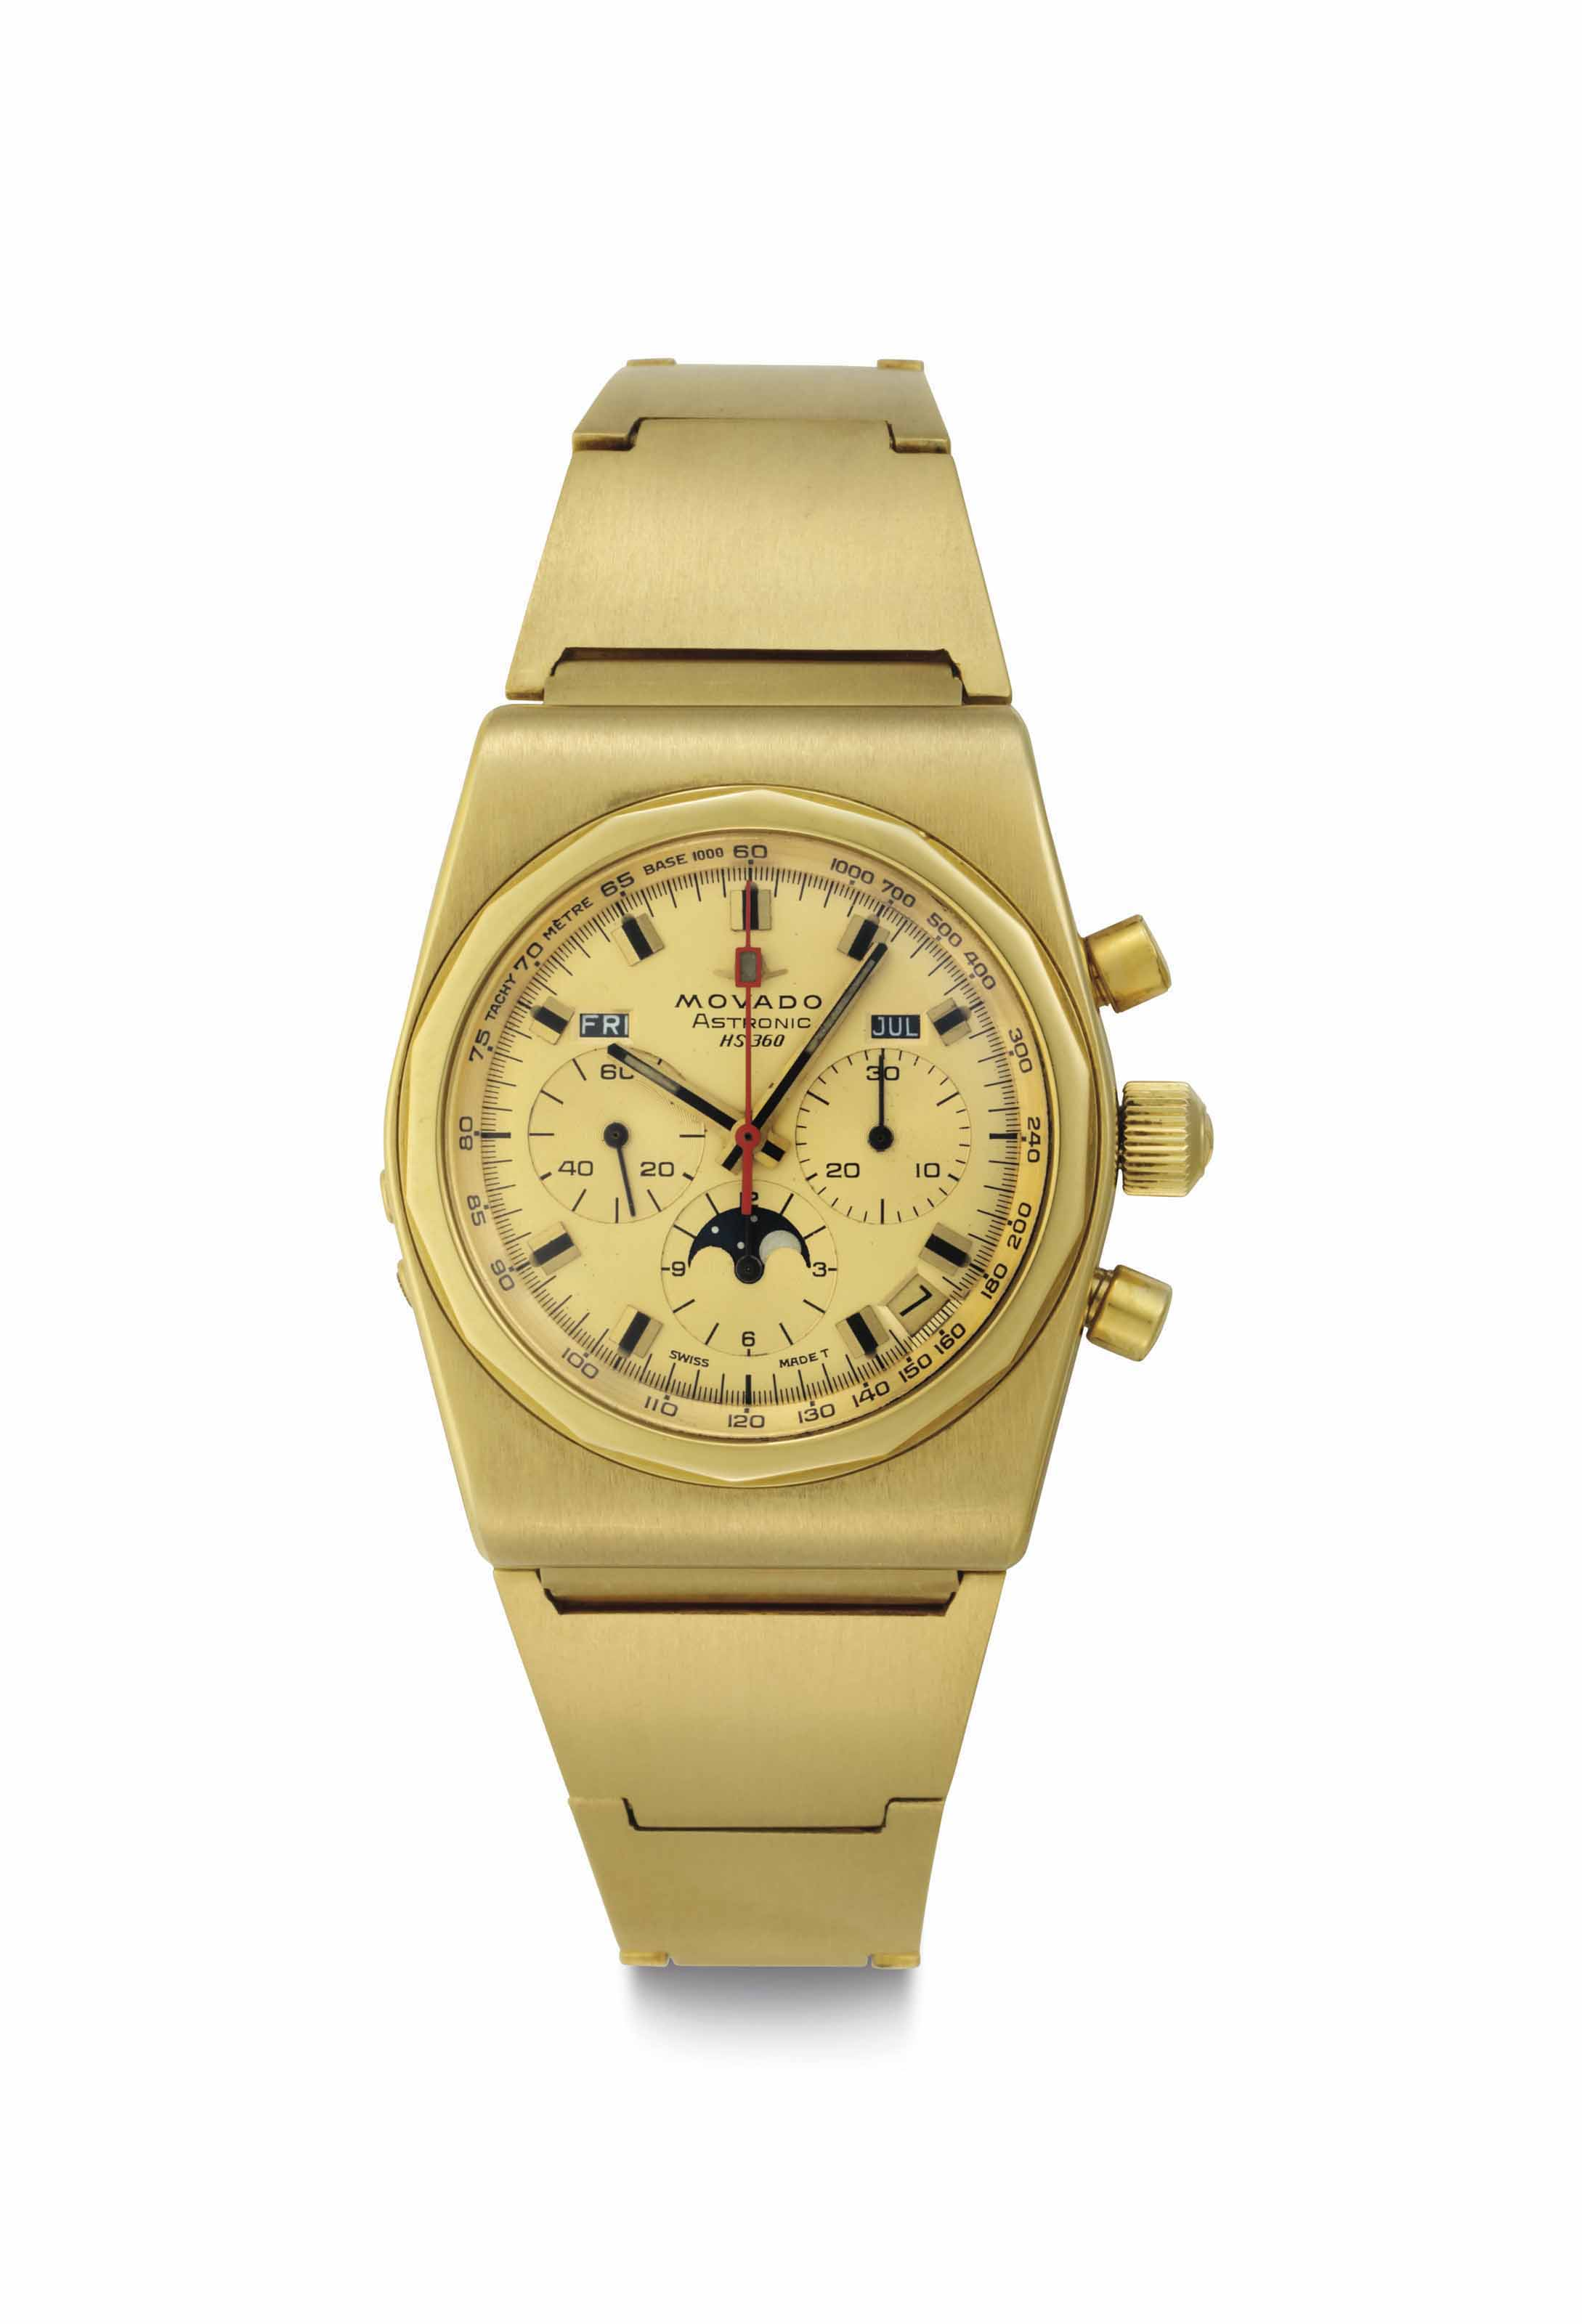 Movado. A Fine 18k Gold Tonneau-shaped Automatic Triple Date Chronograph Bracelet Watch with Moon Phases